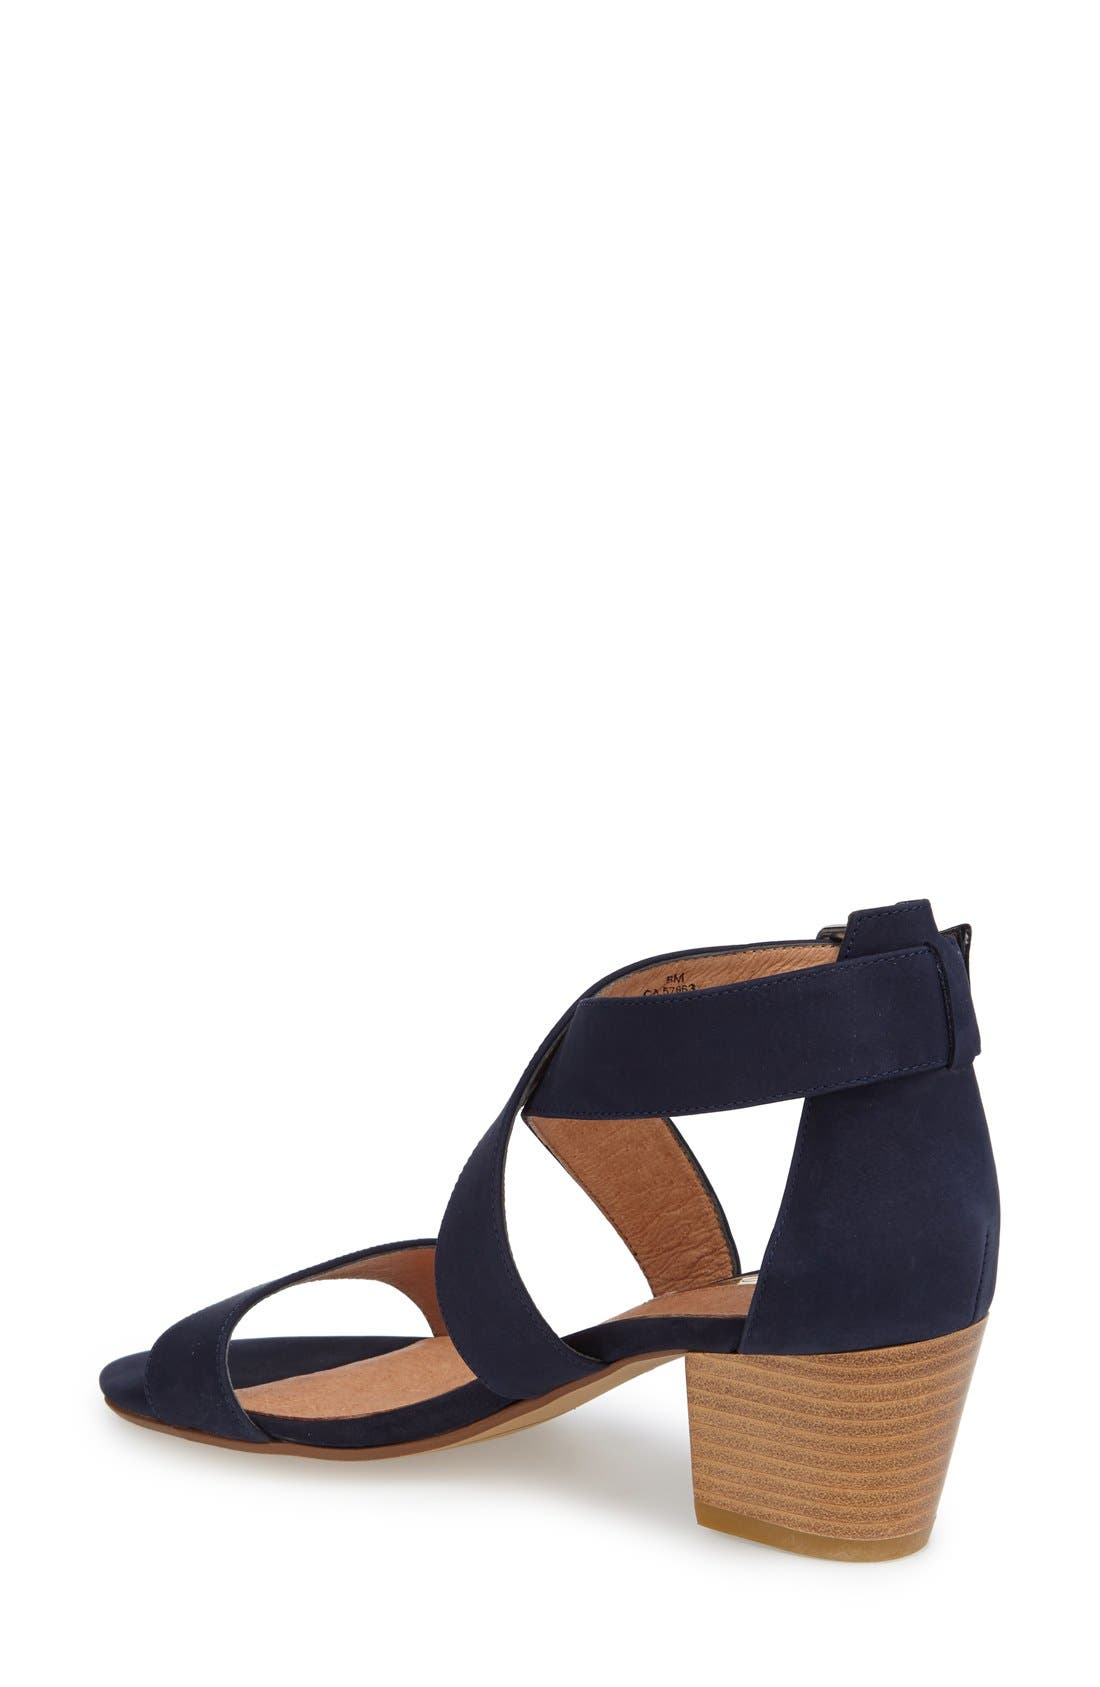 Alternate Image 2  - Halogen 'Rena' Crisscross Strap Sandal (Women)